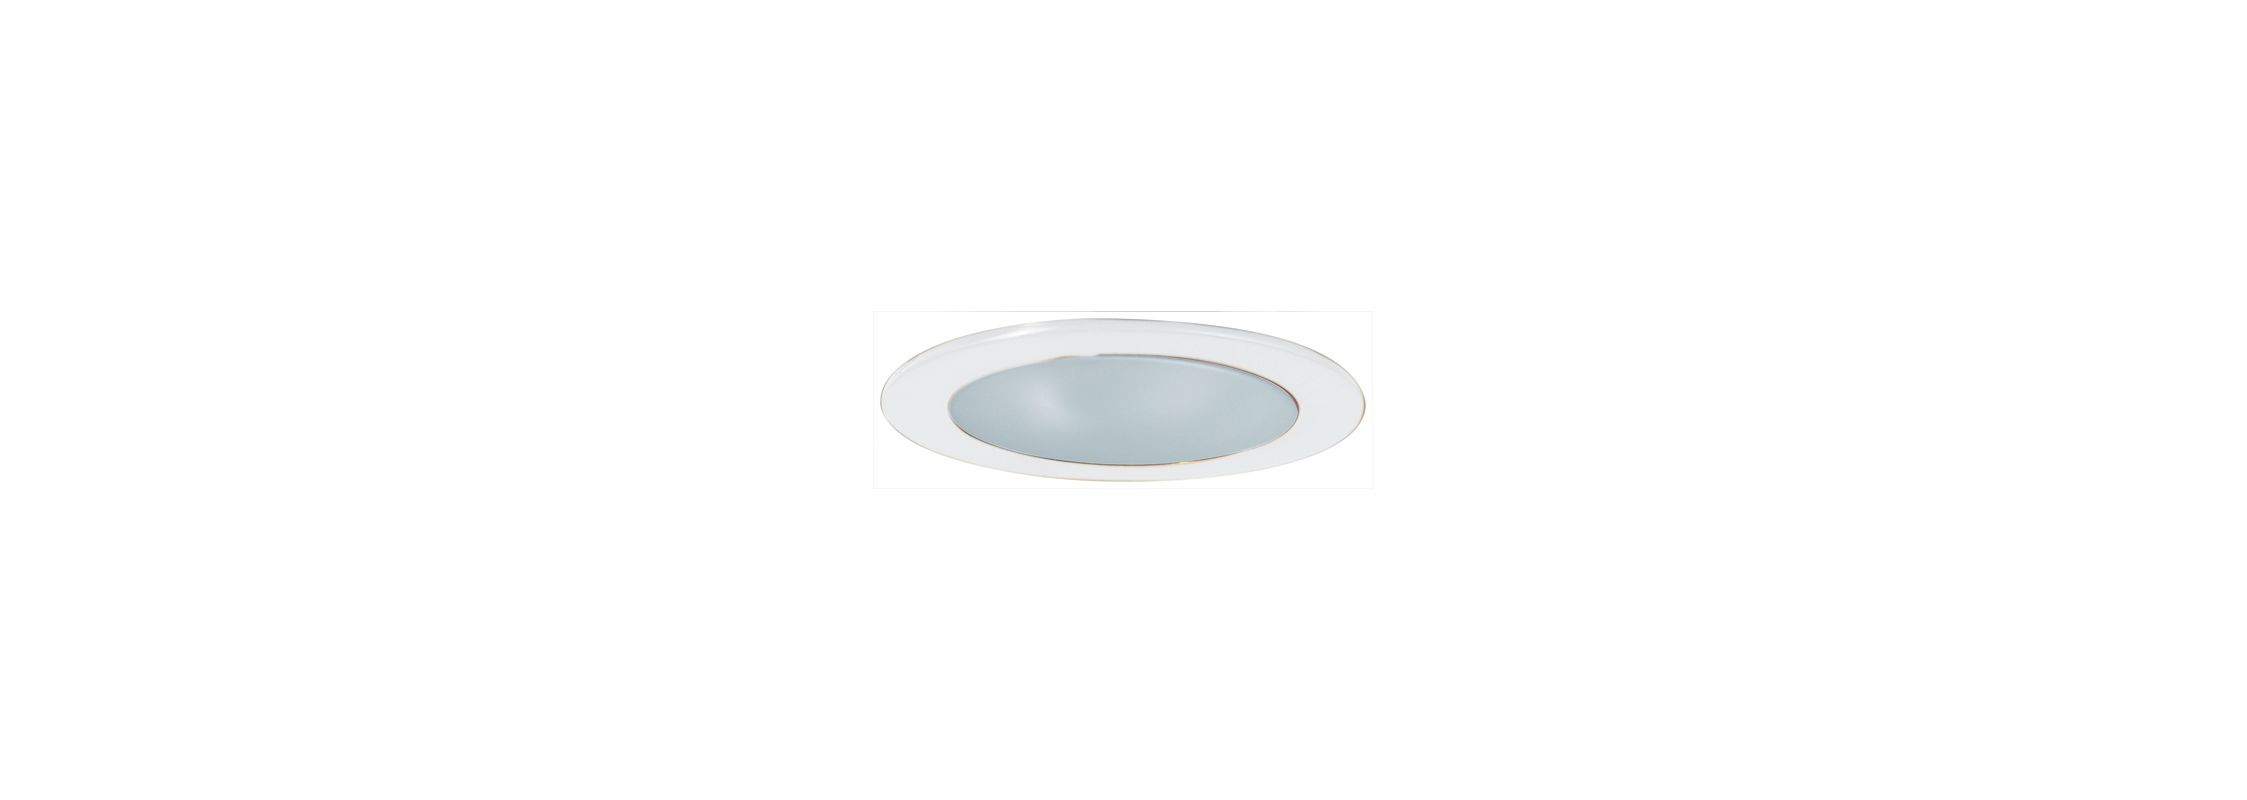 "Elco EL912 4"" Shower Trim with Frosted Lens White Ring Recessed Lights"